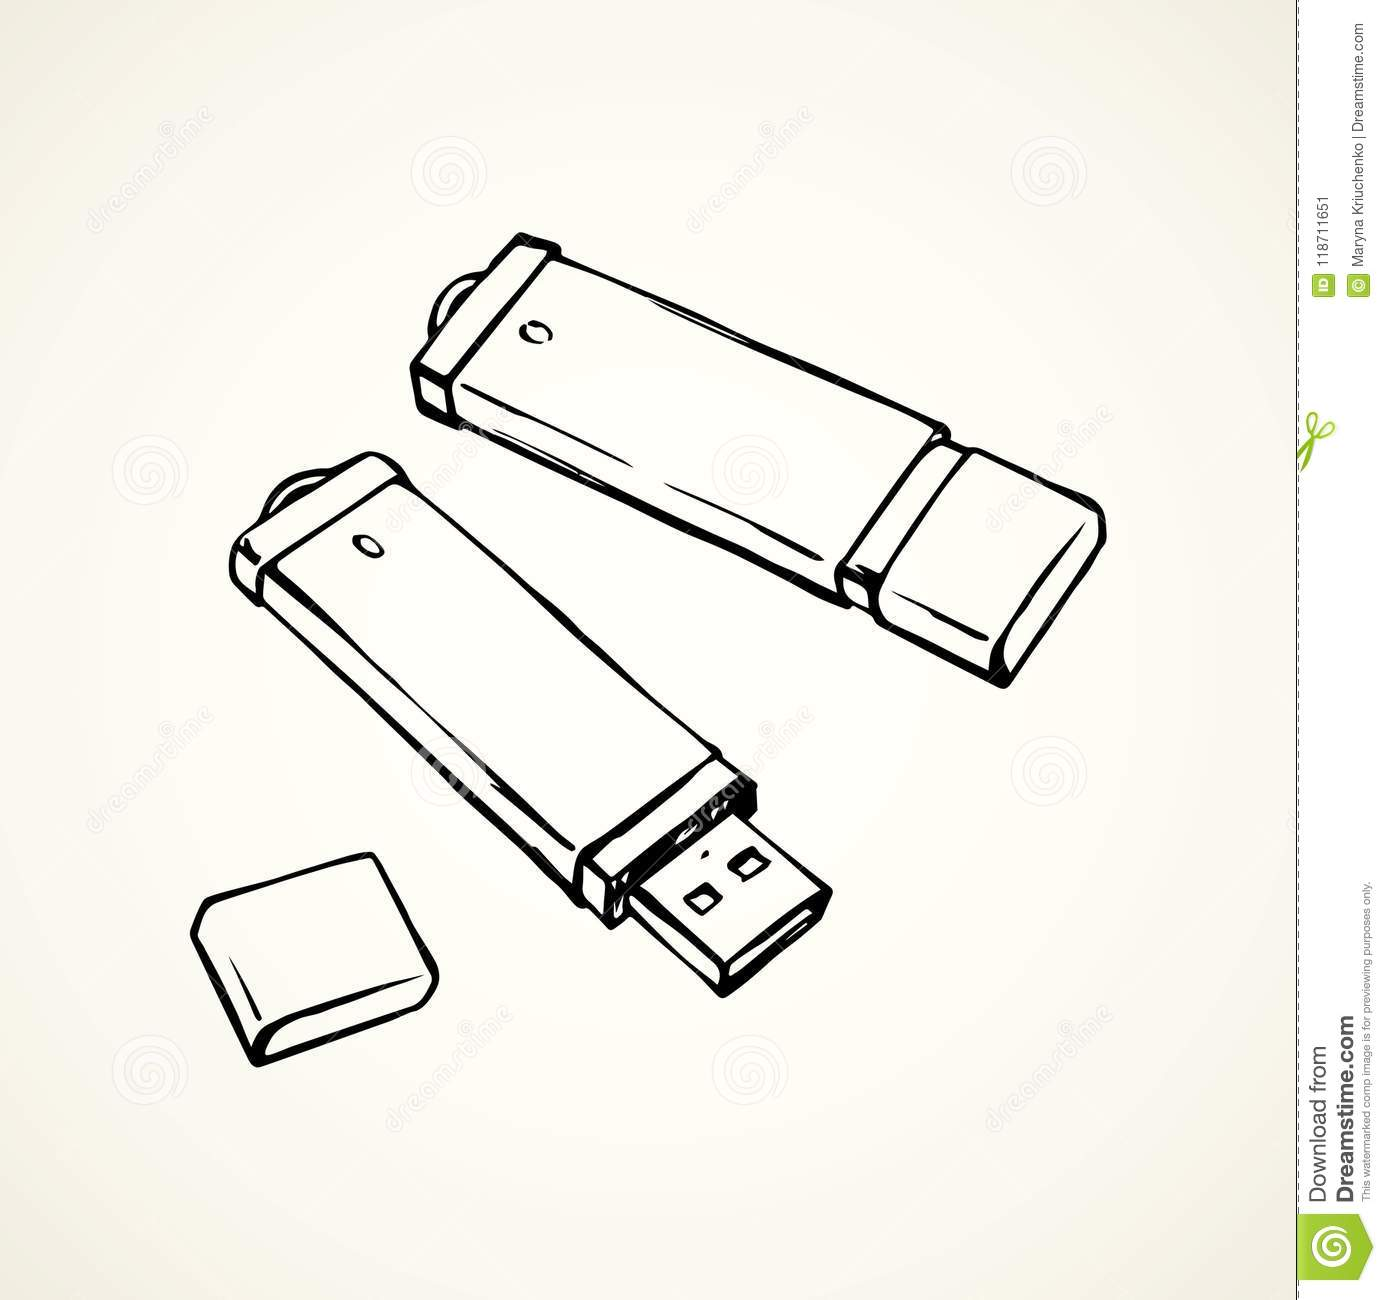 Flash Drive  Vector Drawing Stock Vector - Illustration of object